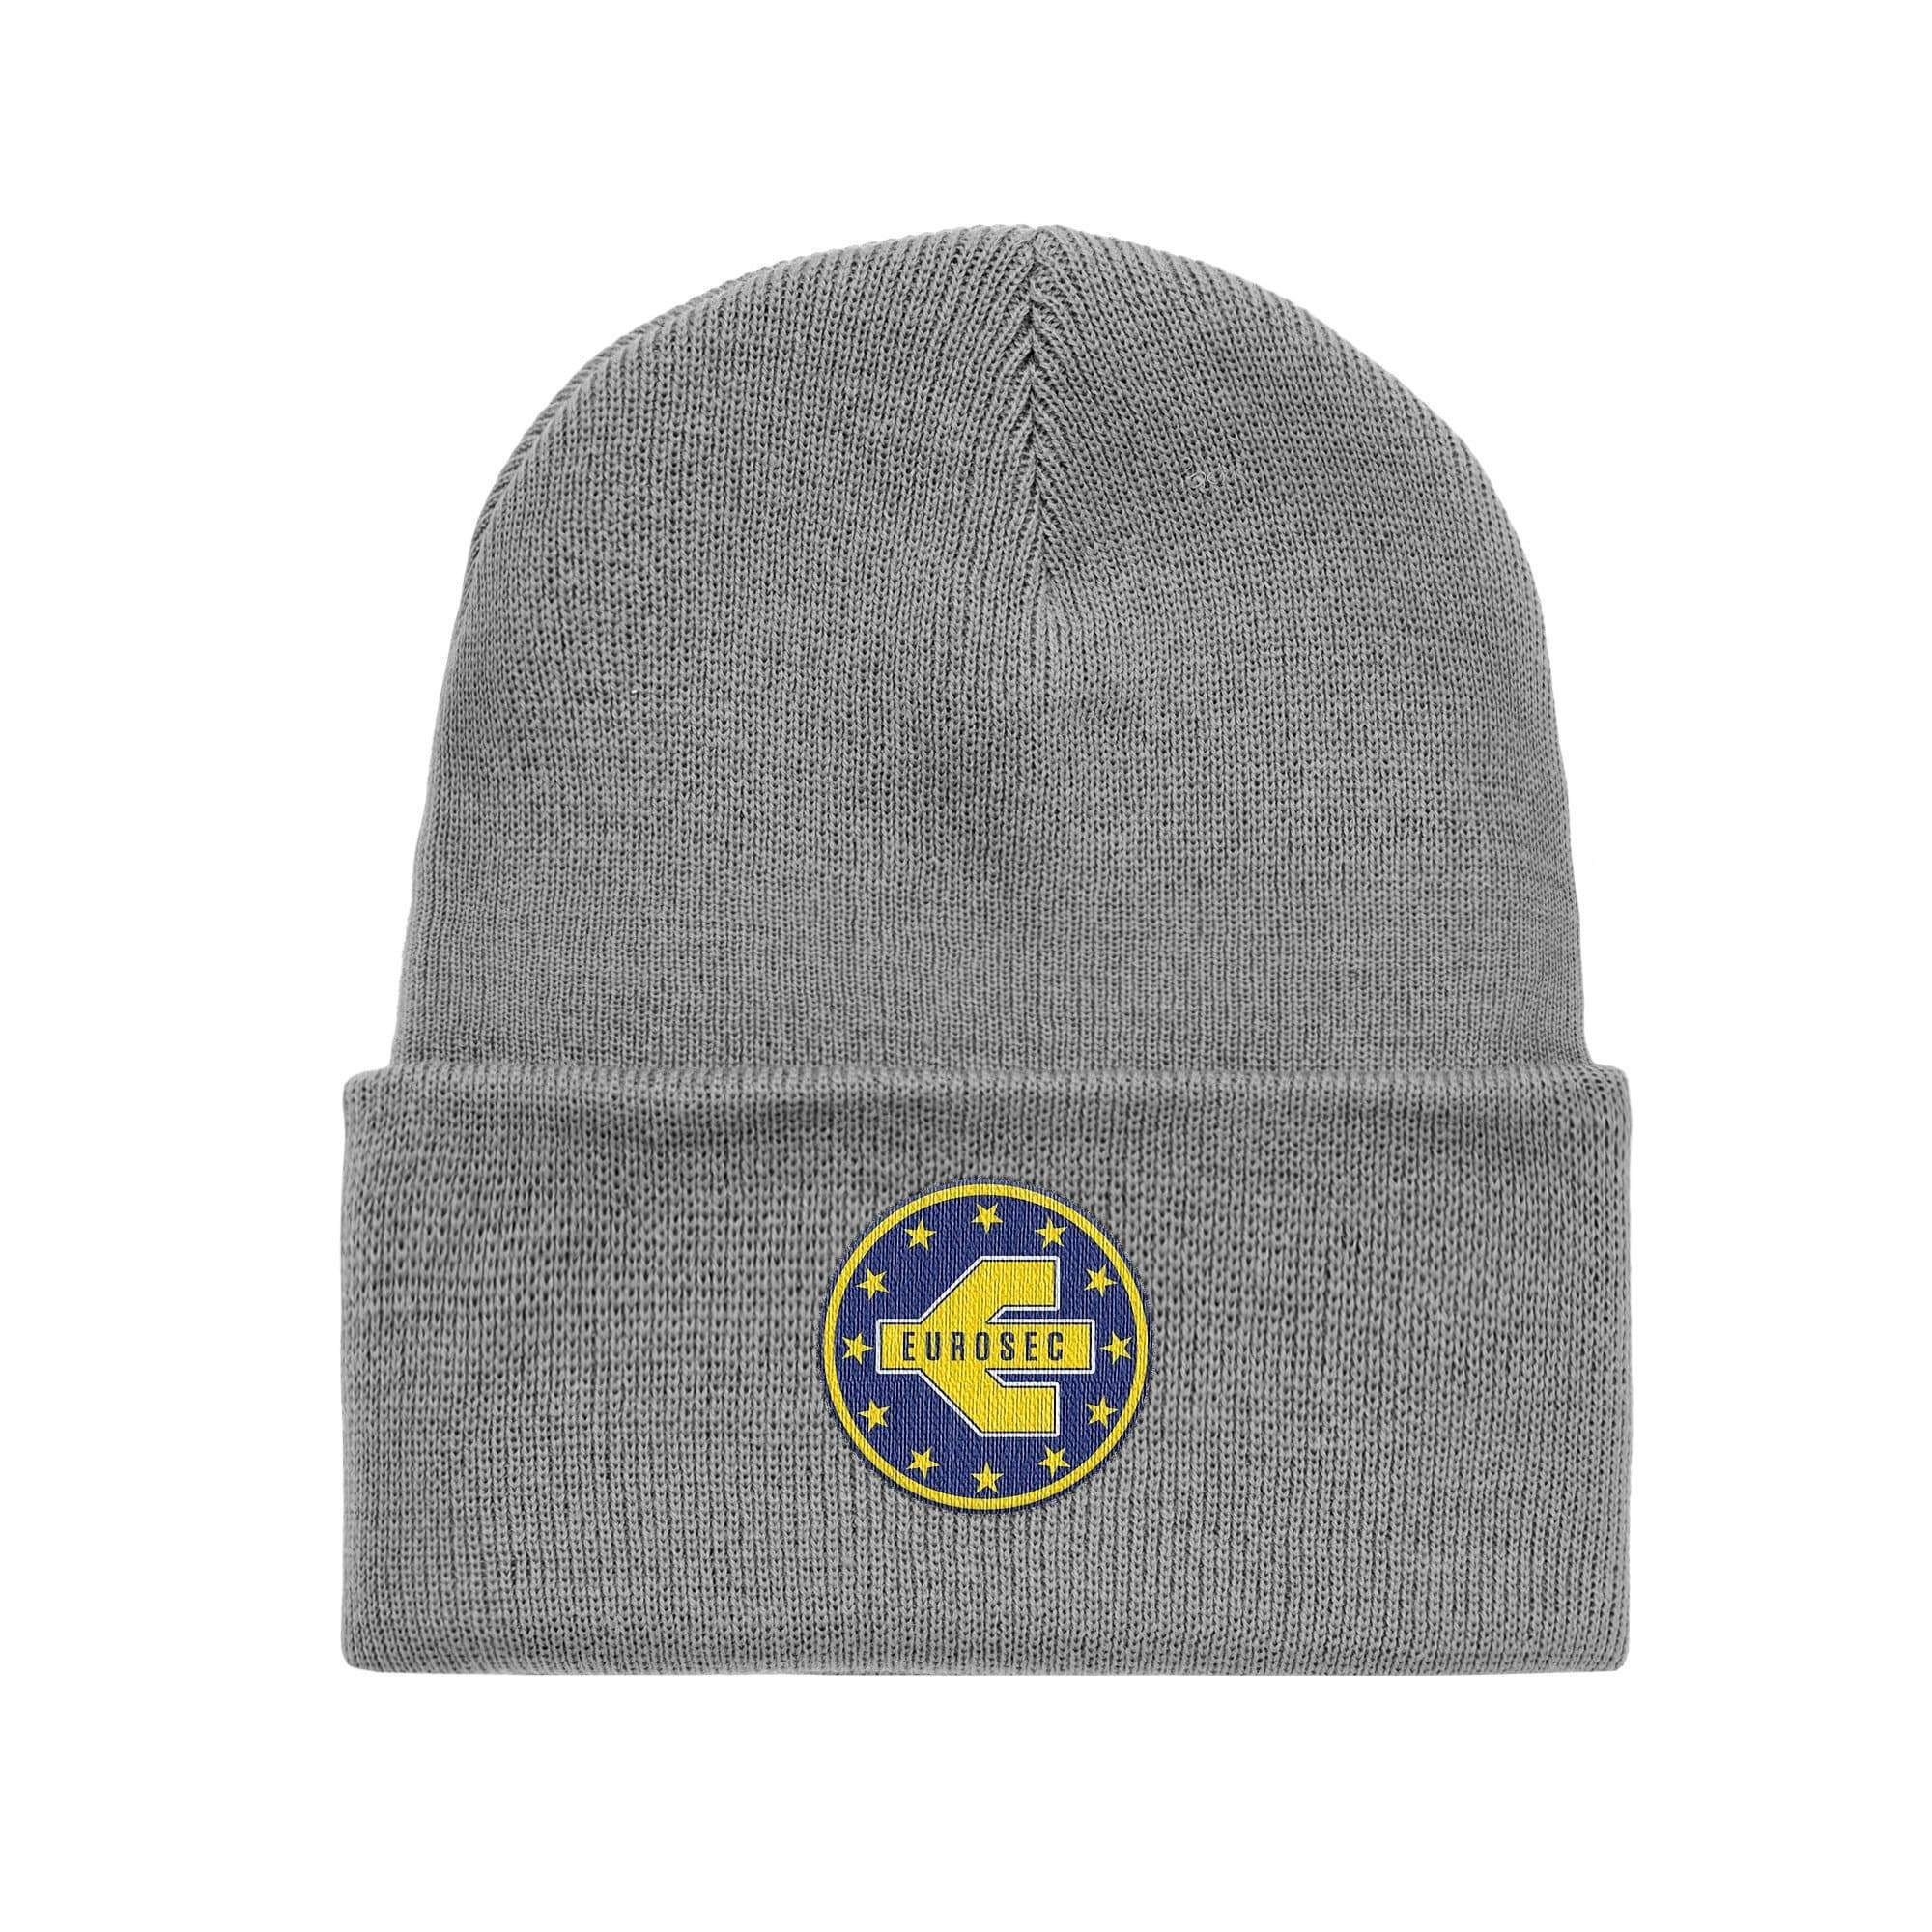 Eurosec Logo Beanie (Wooly hat) - The Gerry Anderson Store